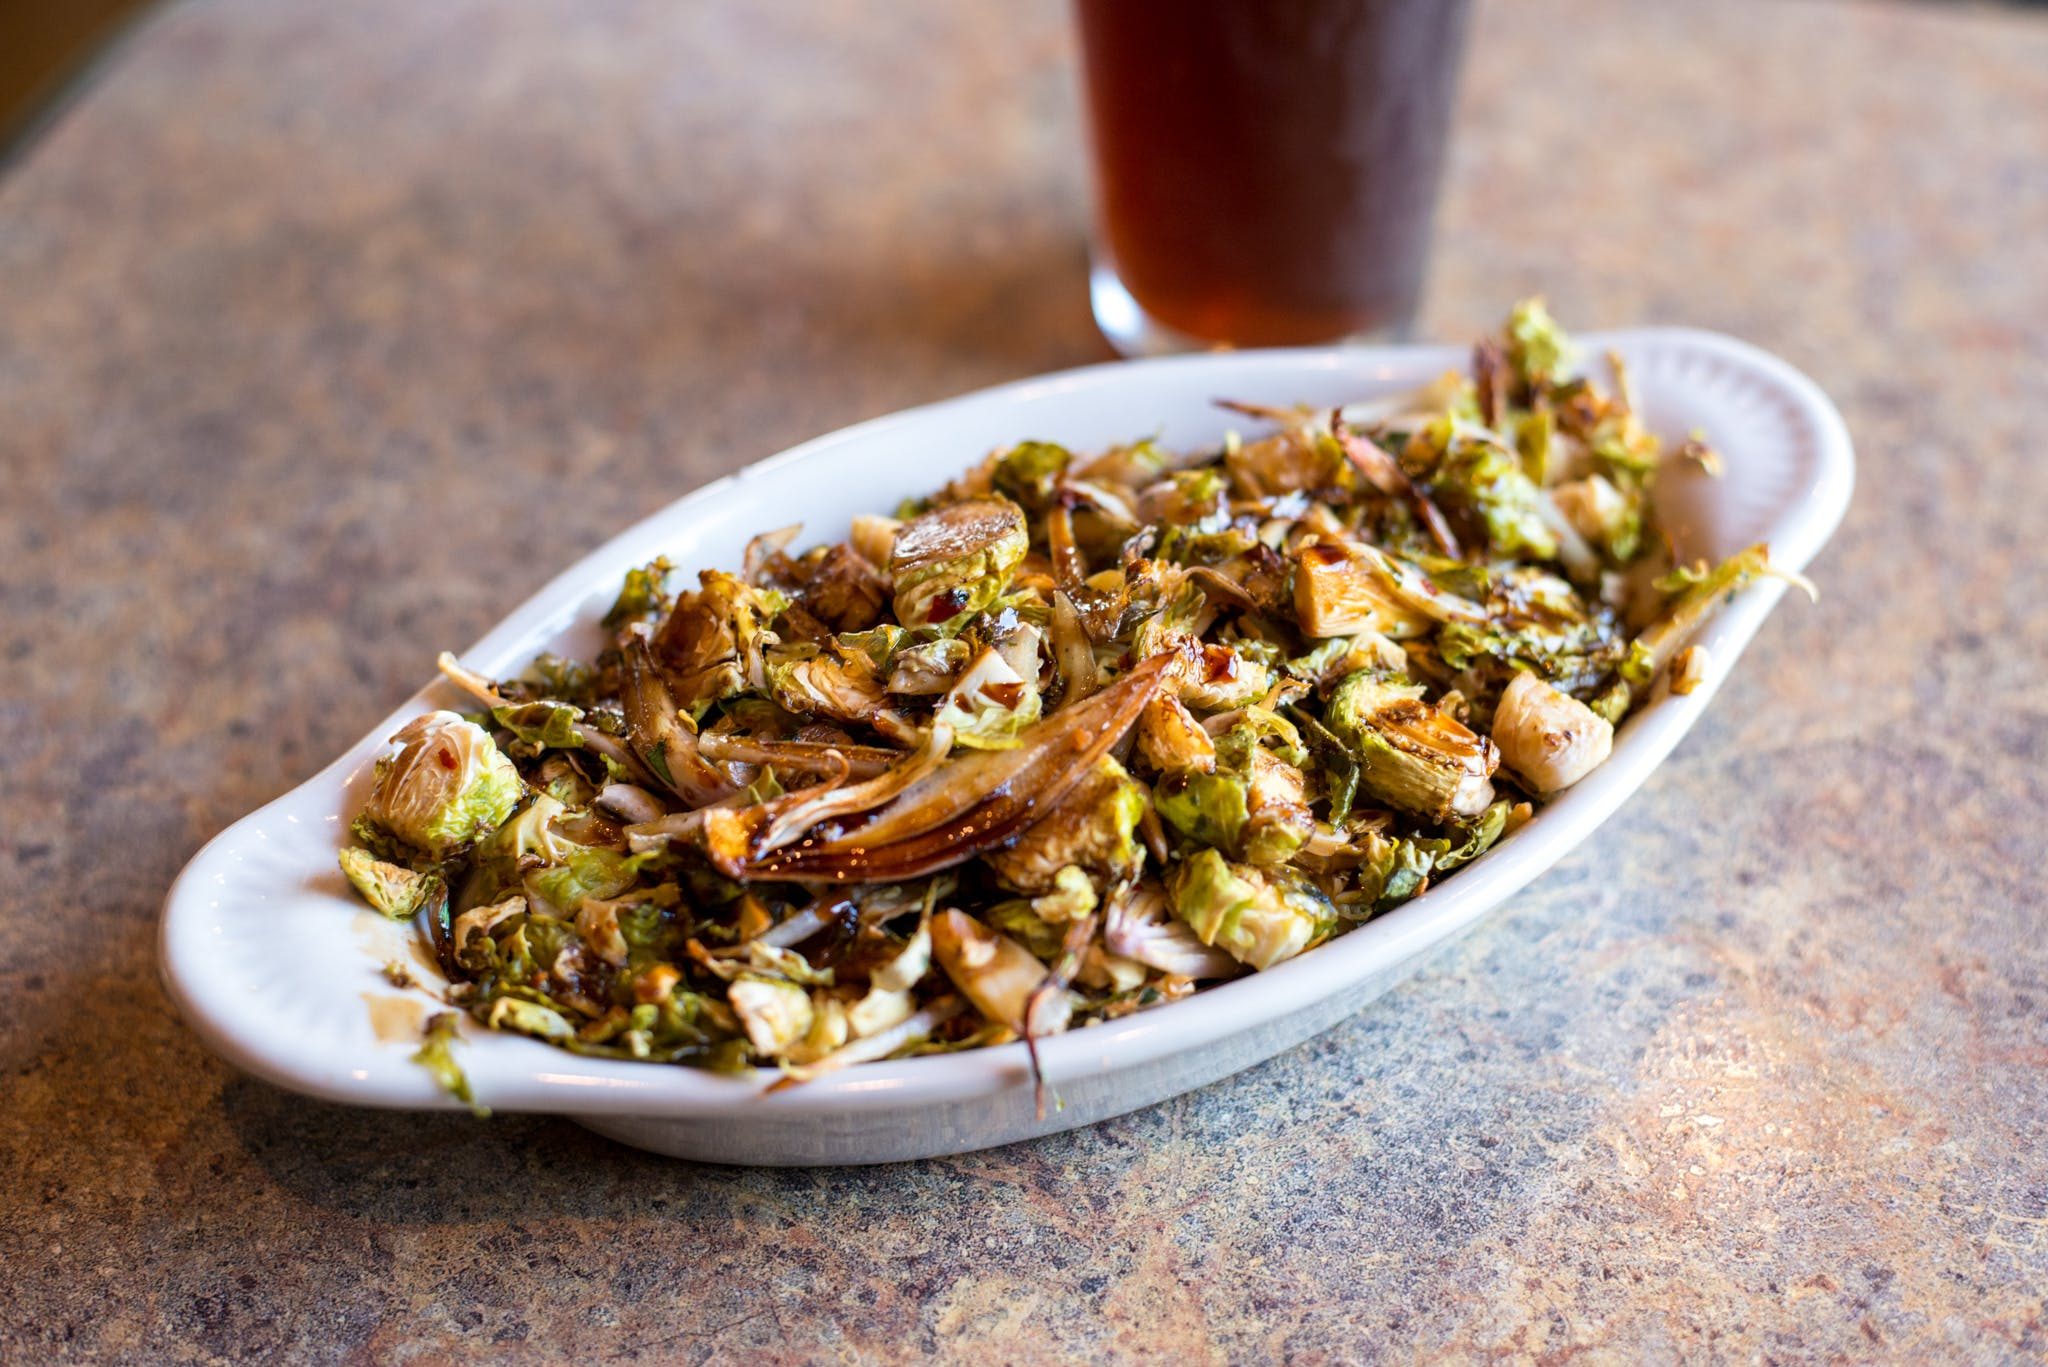 Brussel Sprout Stir-Fry from Brickhouse Craft Burgers & Brews in De Pere, WI